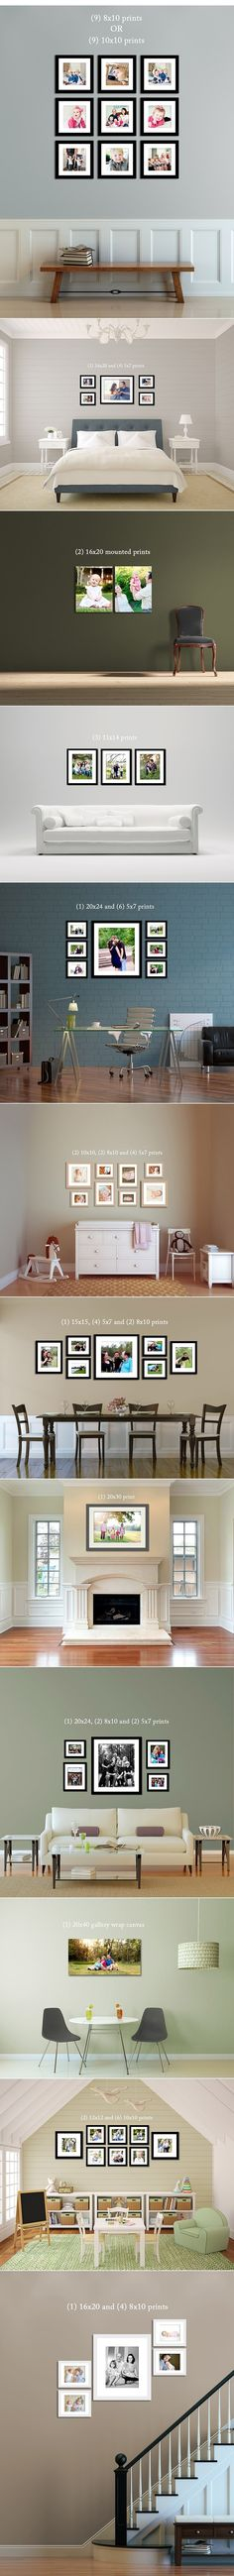 Photo sizing for wall arrangements